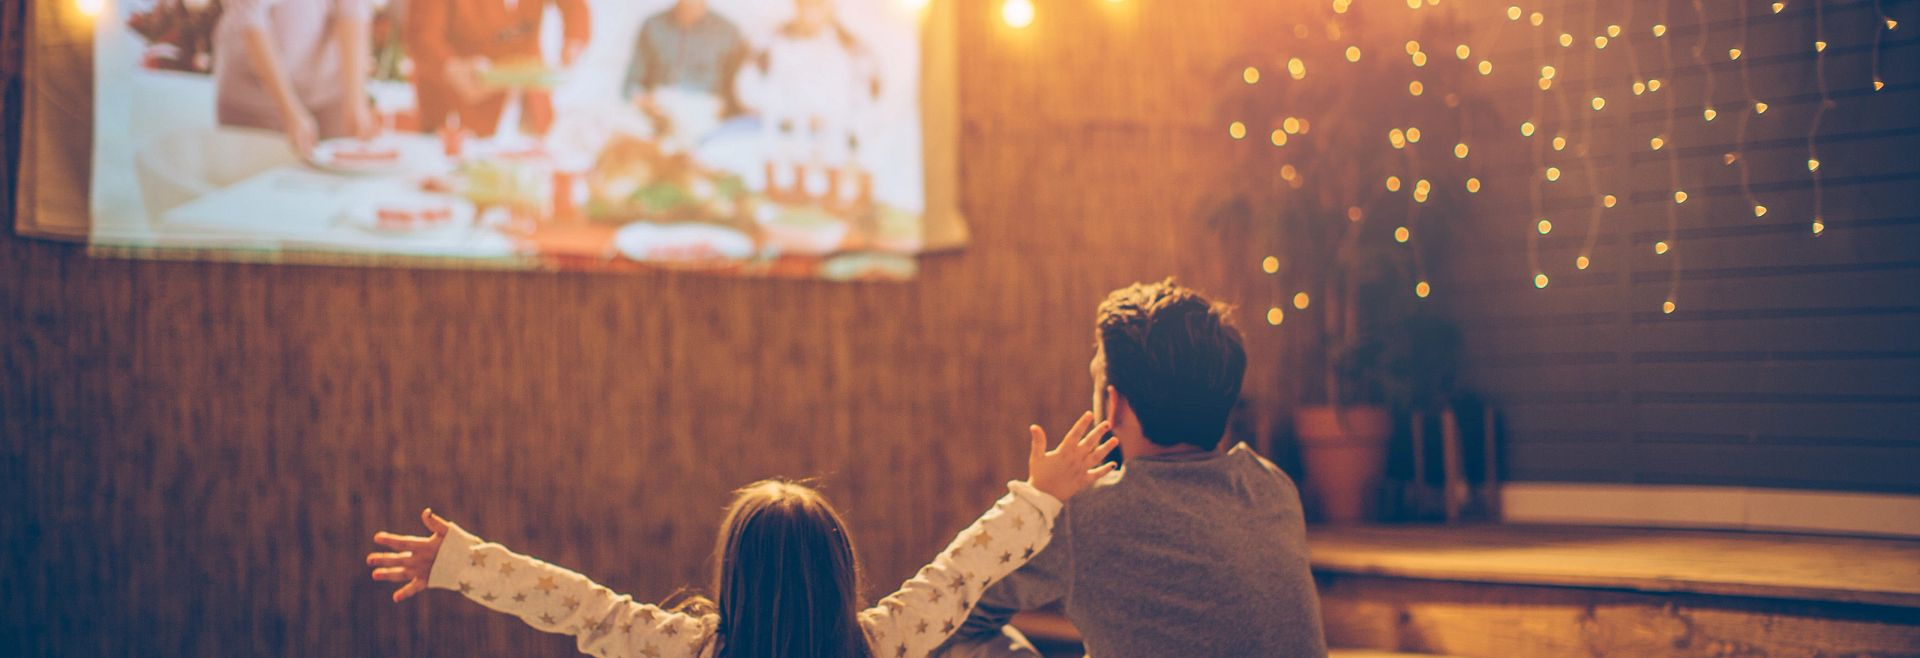 Blog Summer Movie Night Getty Images